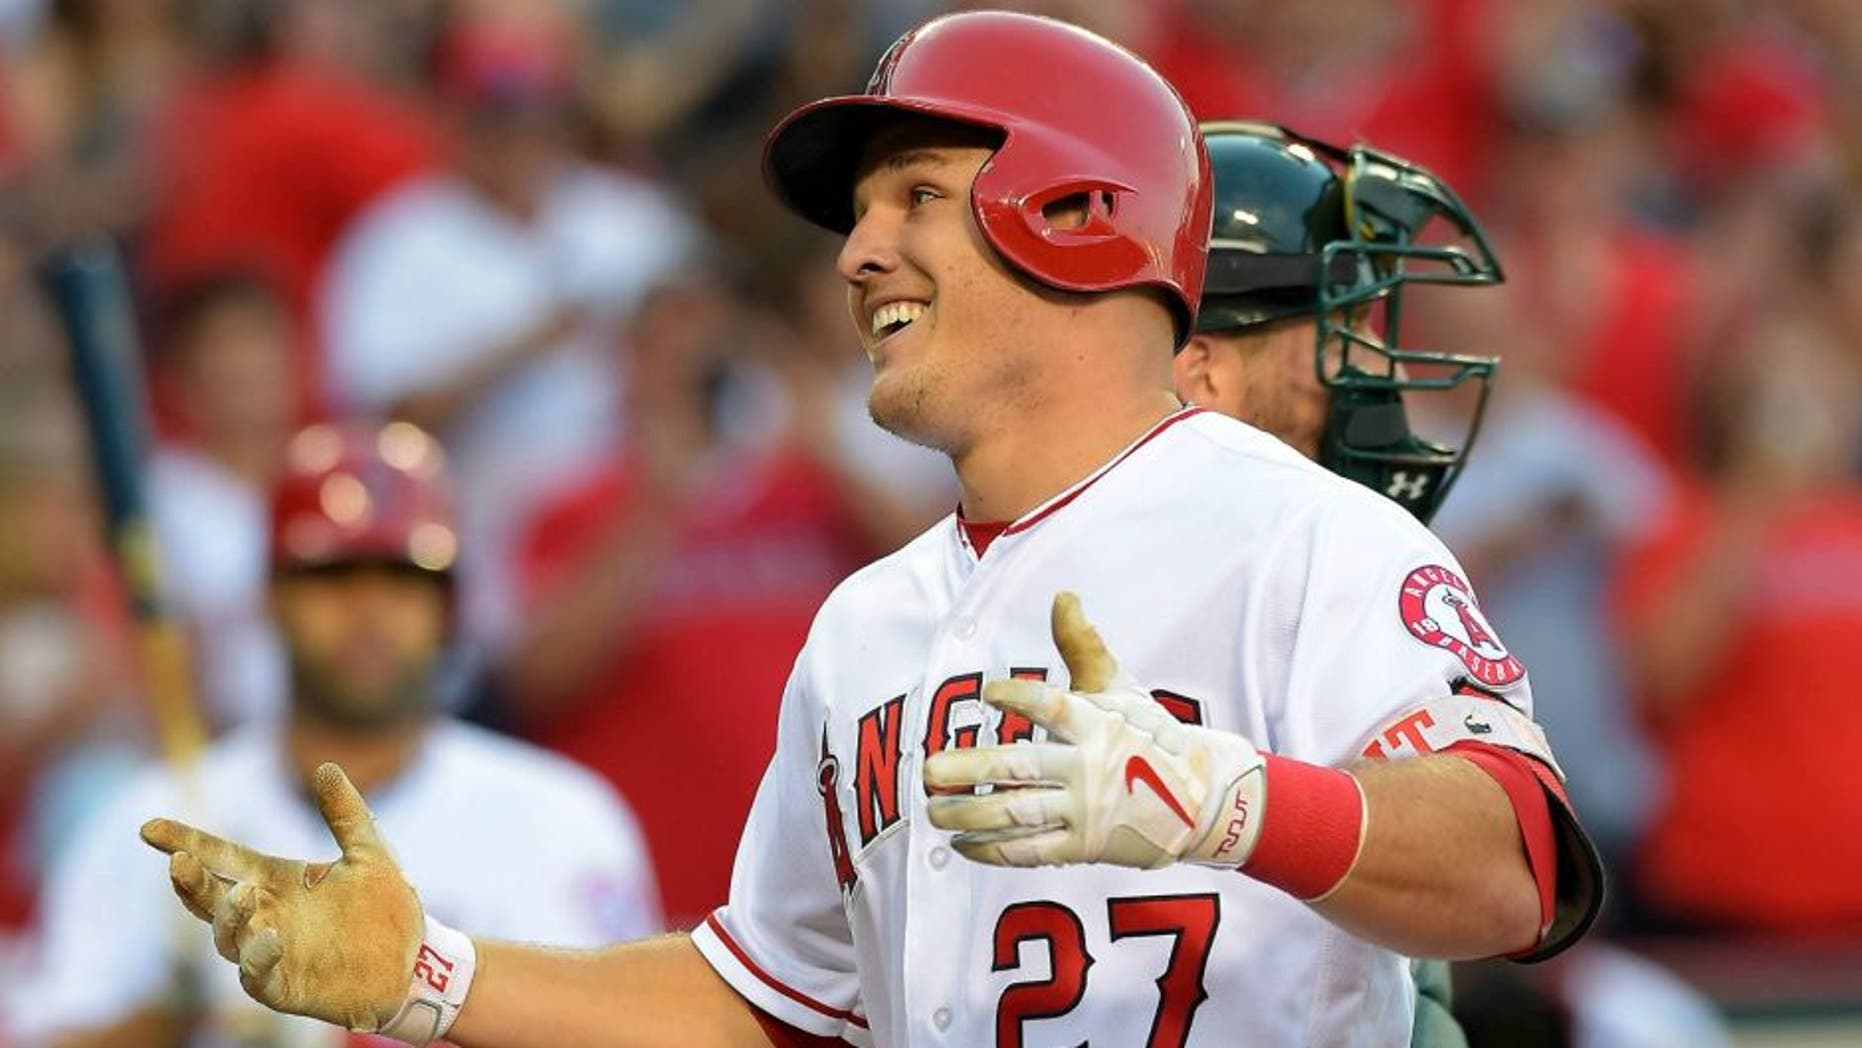 Jun 25, 2016; Anaheim, CA, USA; Los Angeles Angels center fielder Mike Trout (27) crosses the plate after a solo home run off Oakland Athletics relief pitcher Dillon Overton (47) in the first inning of the game at Angel Stadium of Anaheim. Mandatory Credit: Jayne Kamin-Oncea-USA TODAY Sports